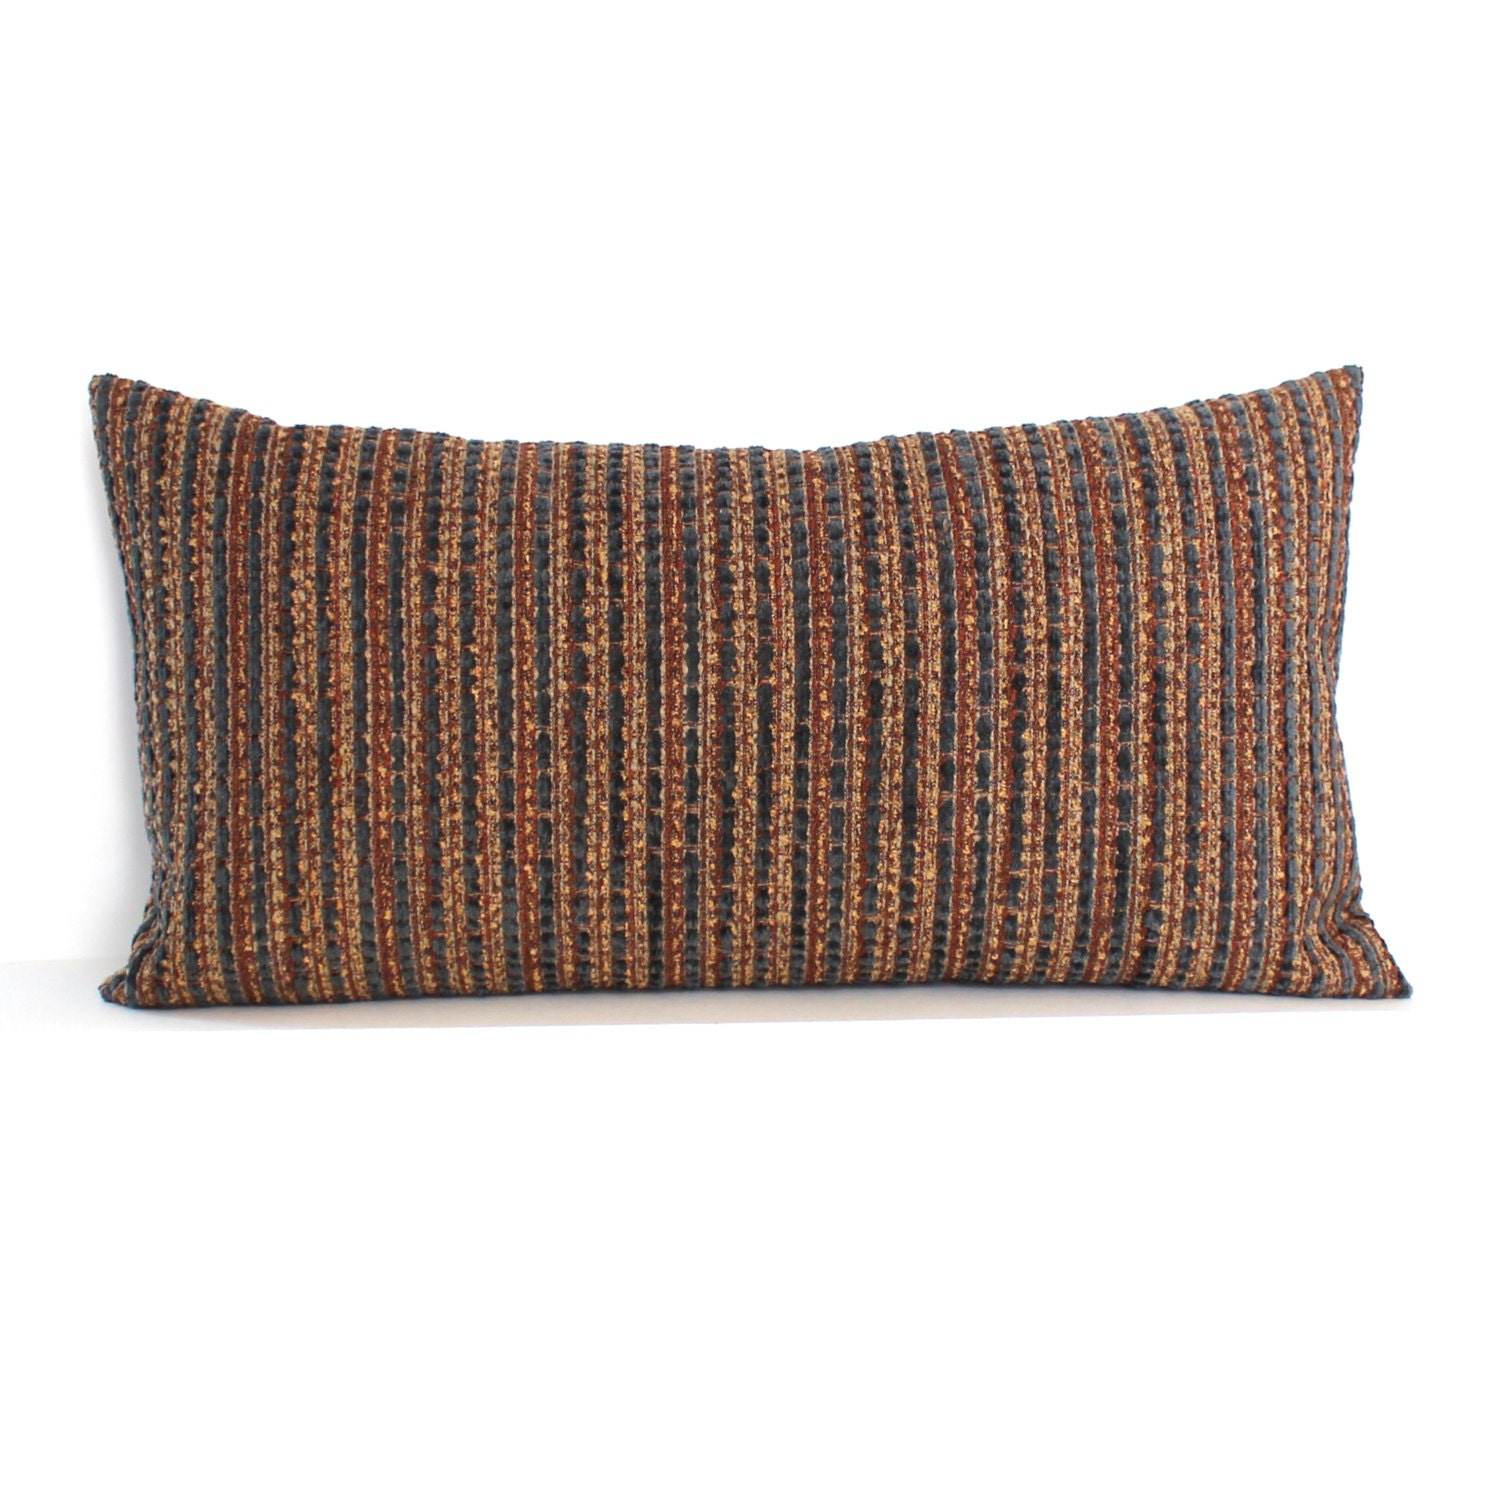 Throw Pillow Rust : Lumbar Pillow Cover Rust Pillow Cover Textured by couchdwellers